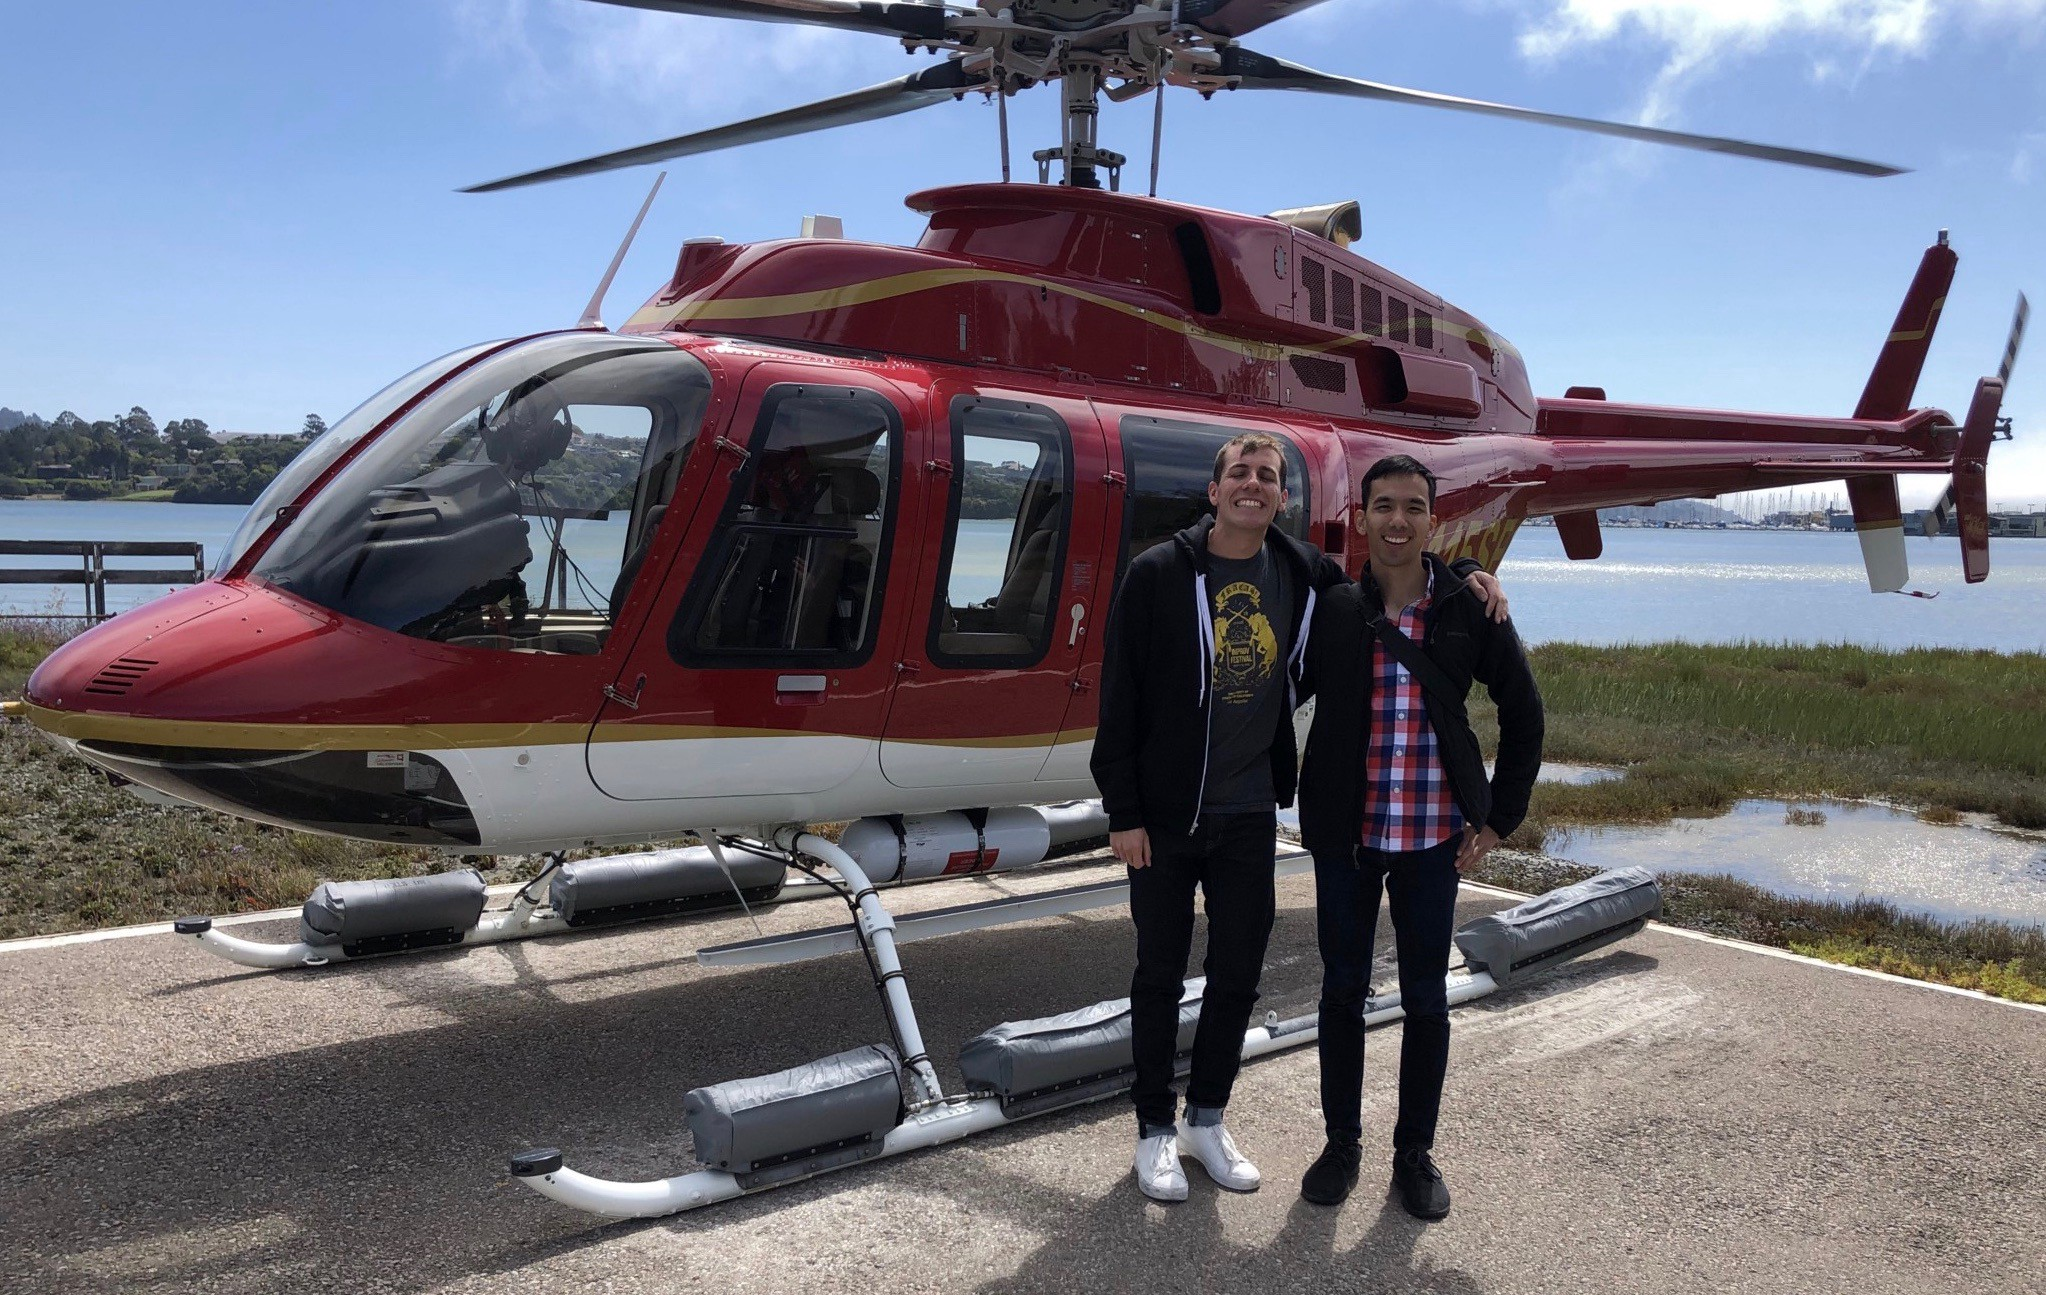 The Sync Up: A Helicopter Ride, Then Netflix and Chill